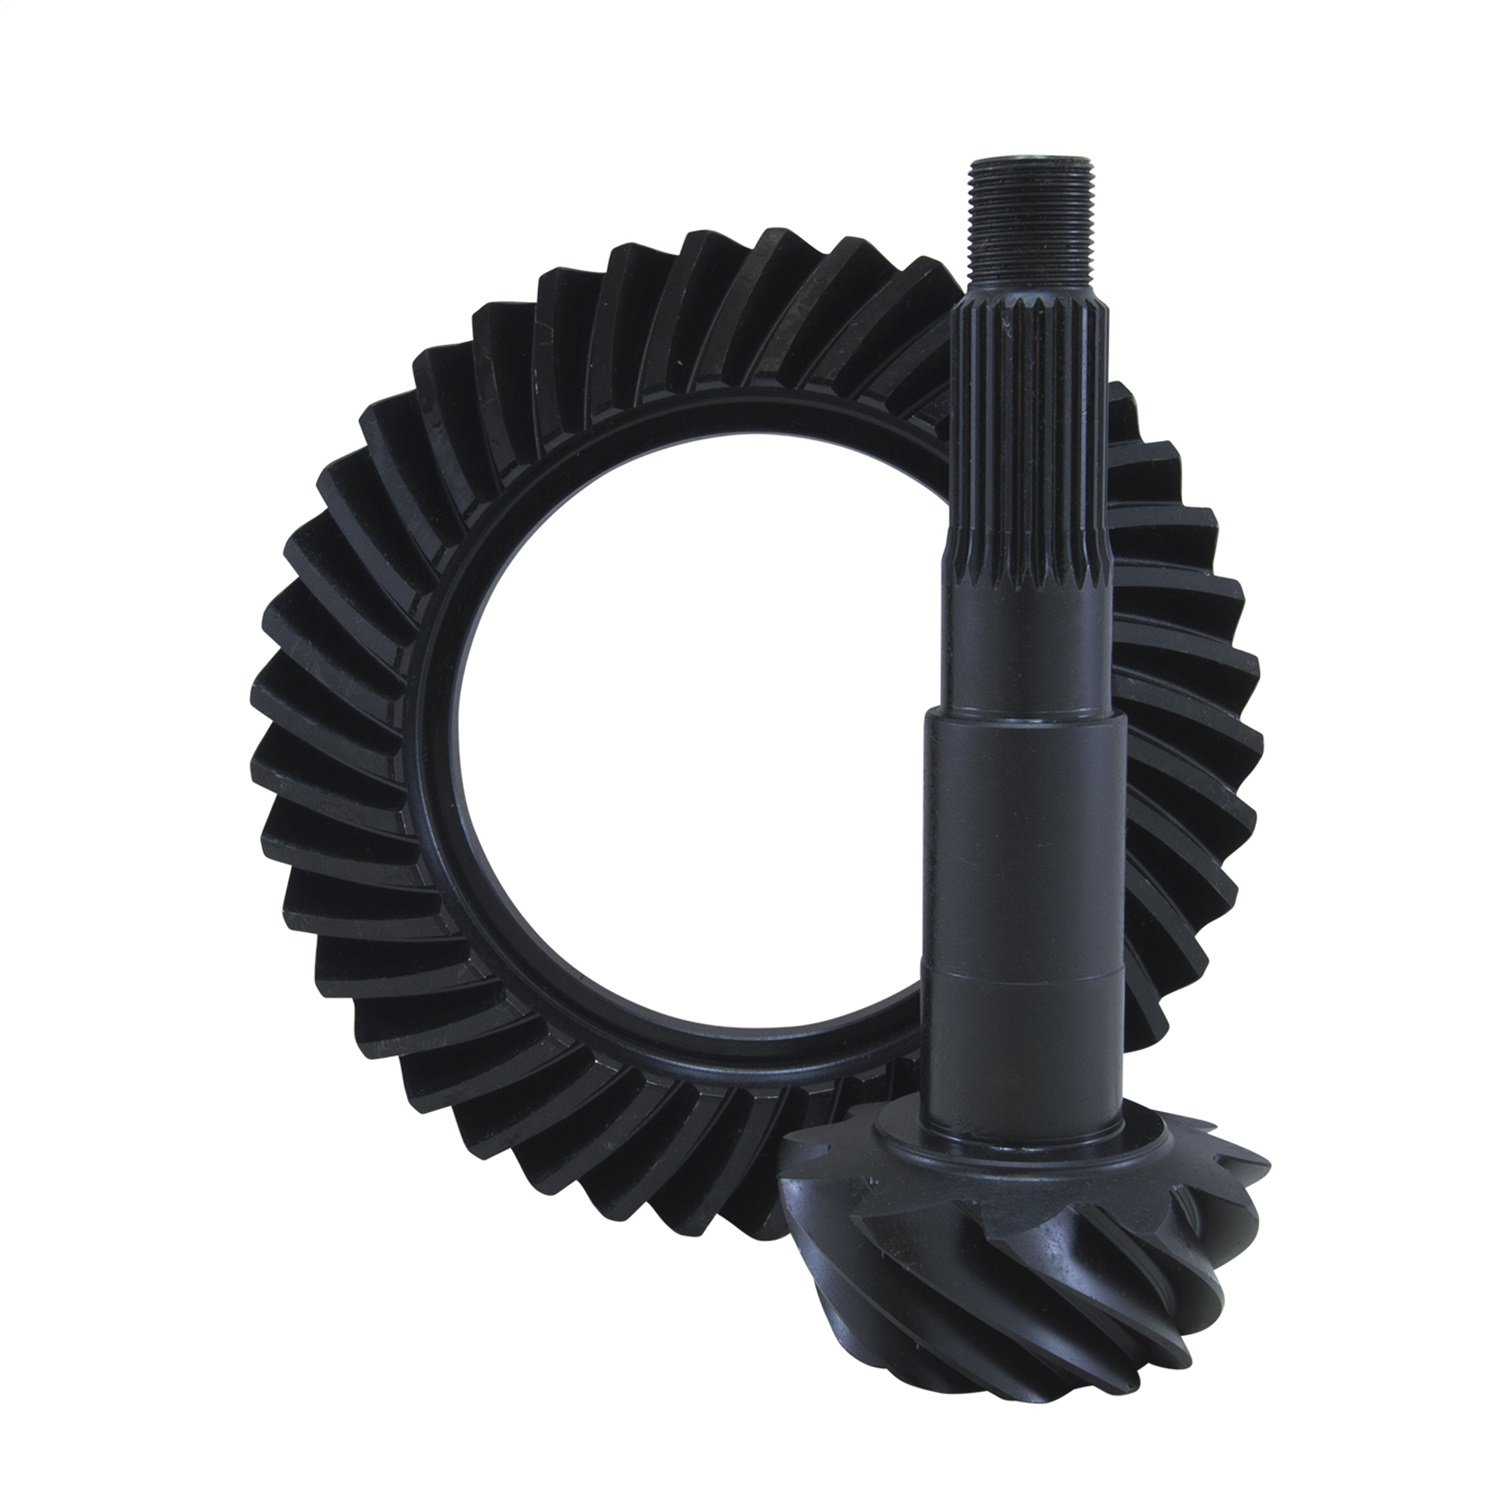 USA Standard Gear (ZG GM12P-373-4) Ring & Pinion Gear Set for GM 12-Bolt Car Differential by USA Standard Gear